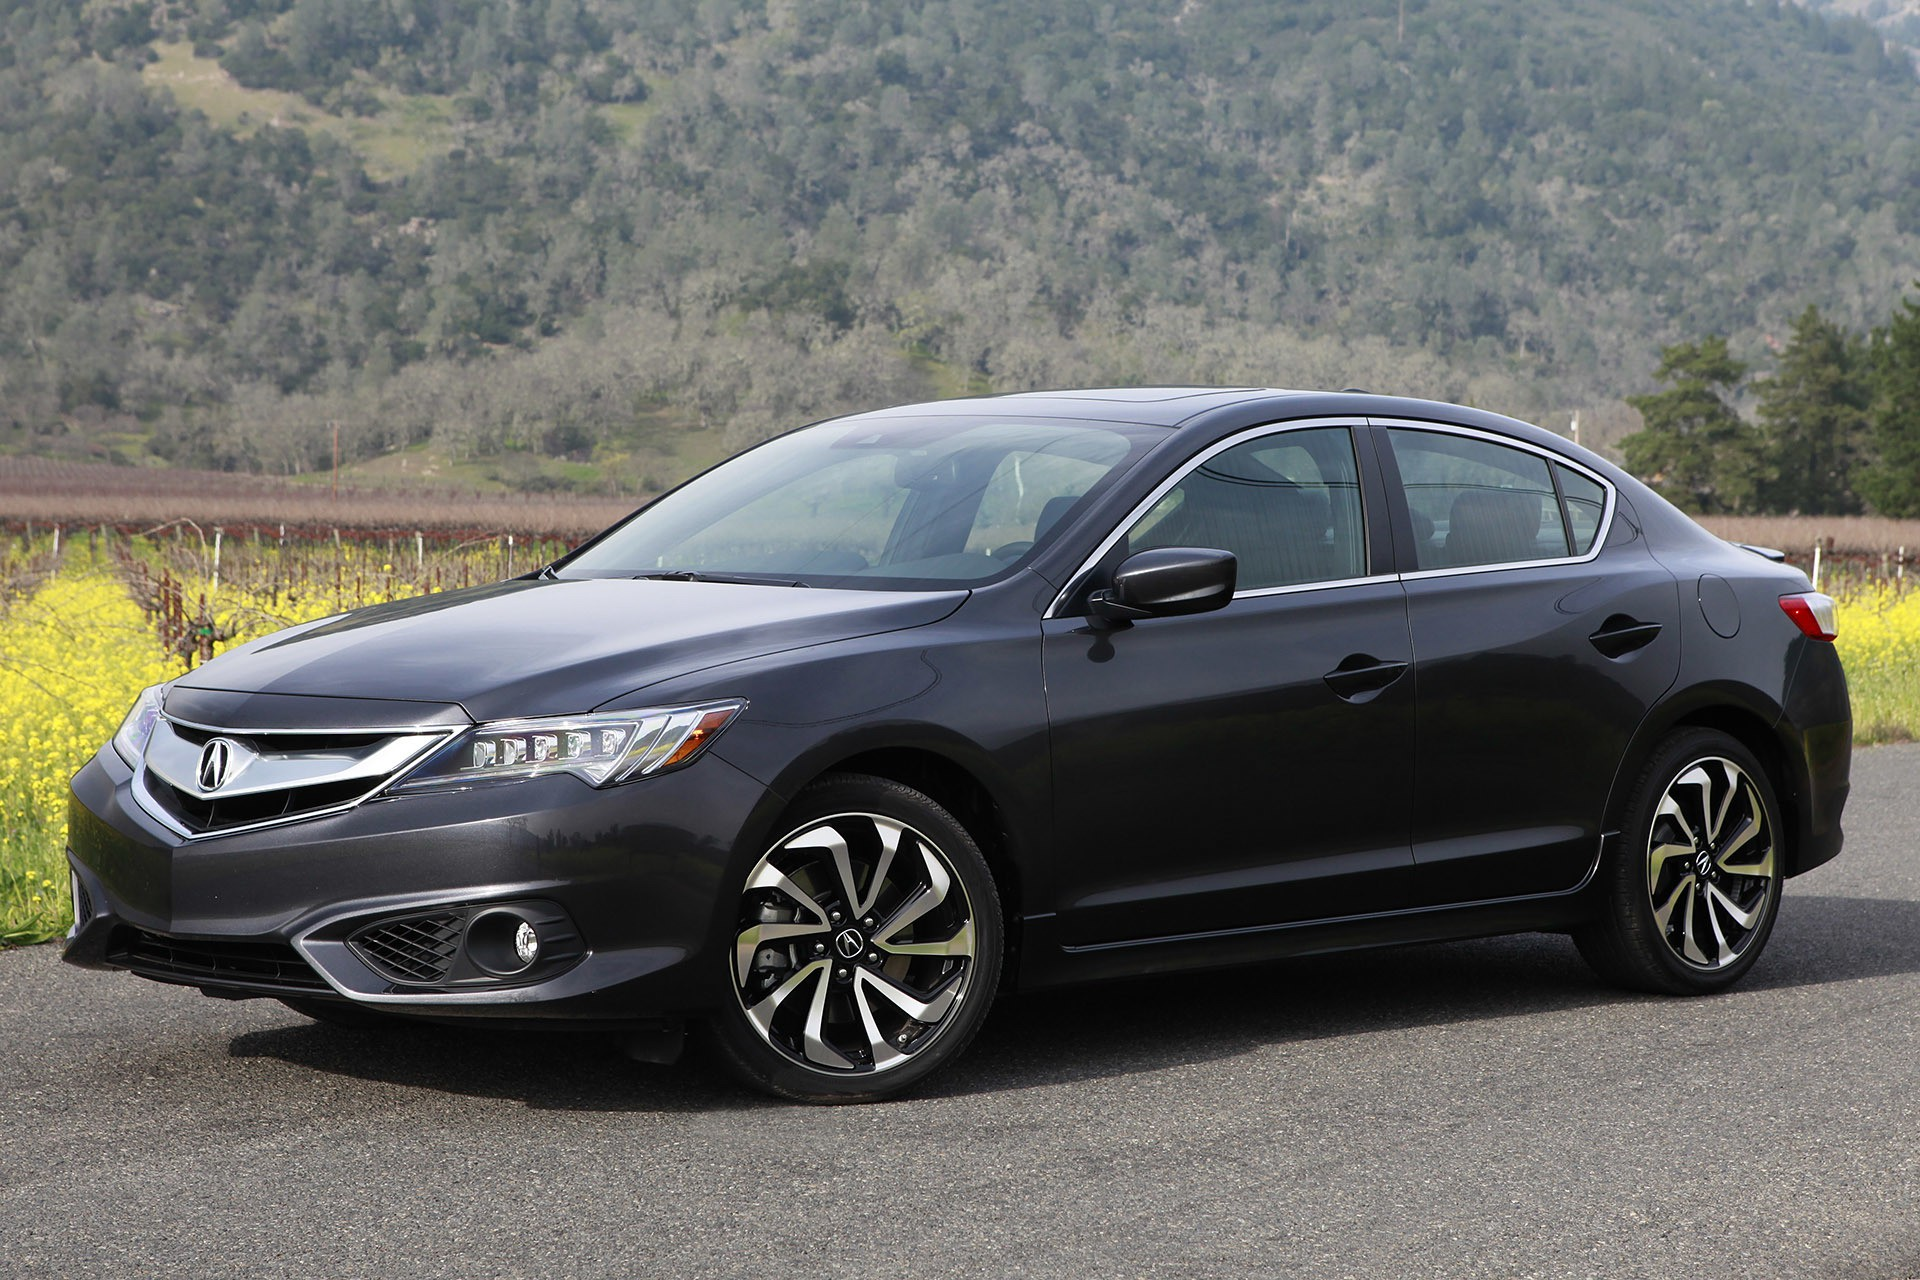 Acura Compact Sport Sedan: What Is ILX?